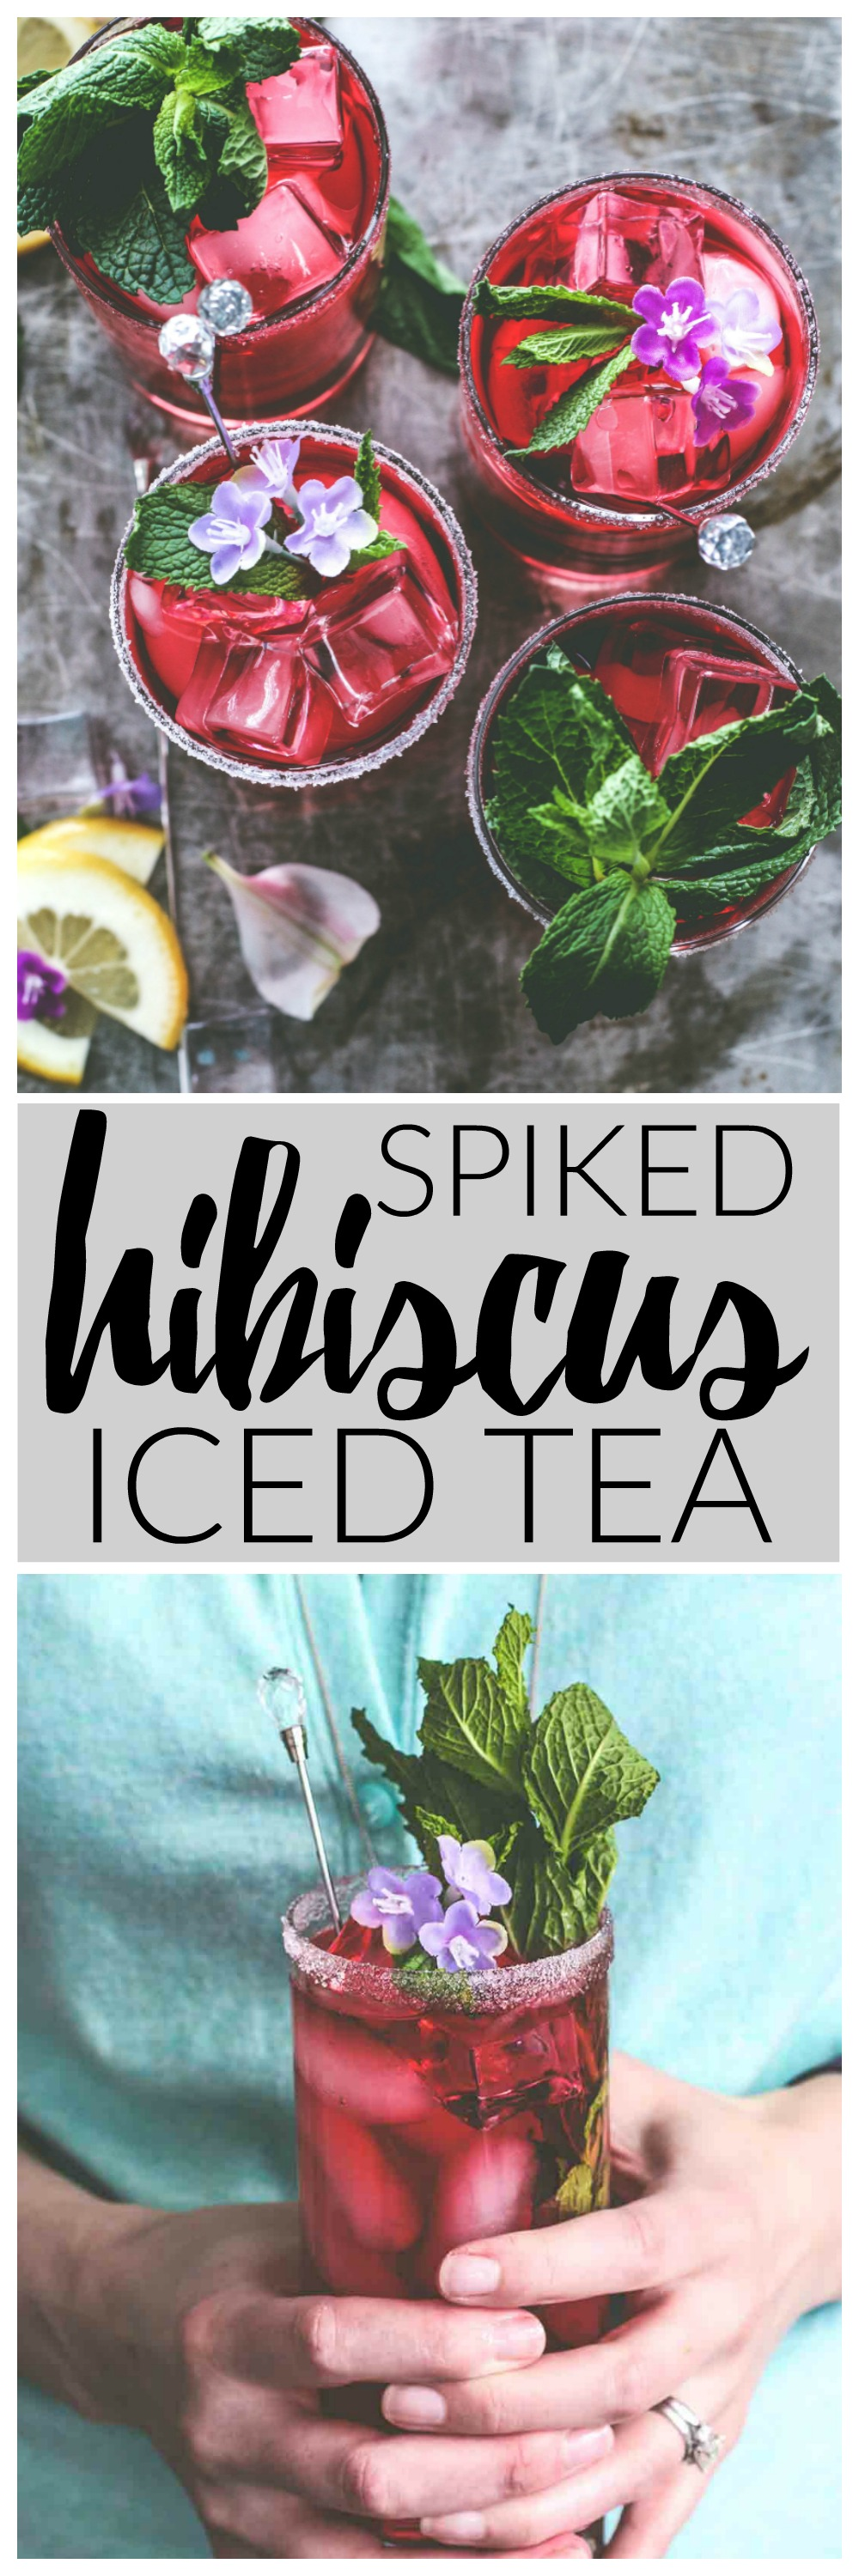 Spiked Hibiscus Iced Tea | Killing Thyme — this ruby-hued drink mixes blueberry vodka with hibiscus iced tea and a lemony simply syrup for a refreshing and not-too-sweet summer bev.